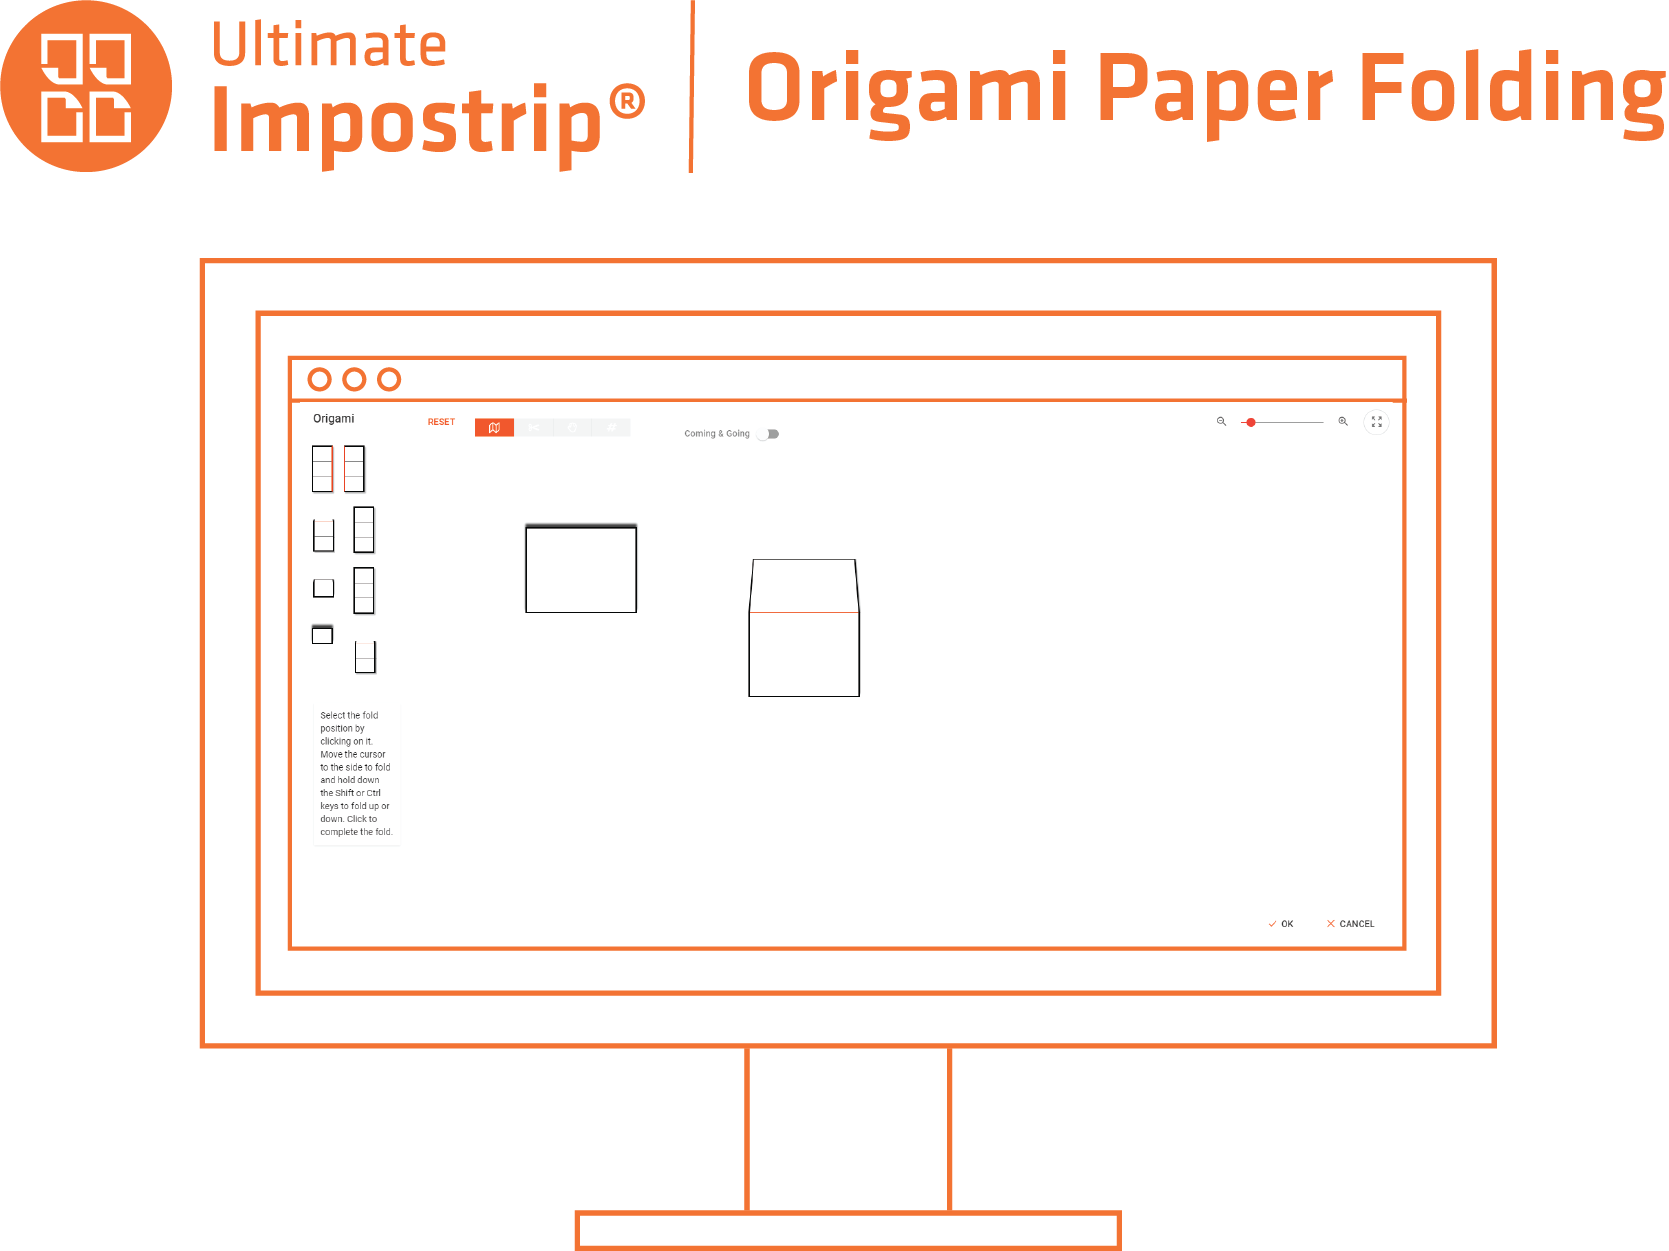 Ultimate TechnoGraphics - Ultimate Impostrip solution logicielle d'imposition - Maquette de papier Origami